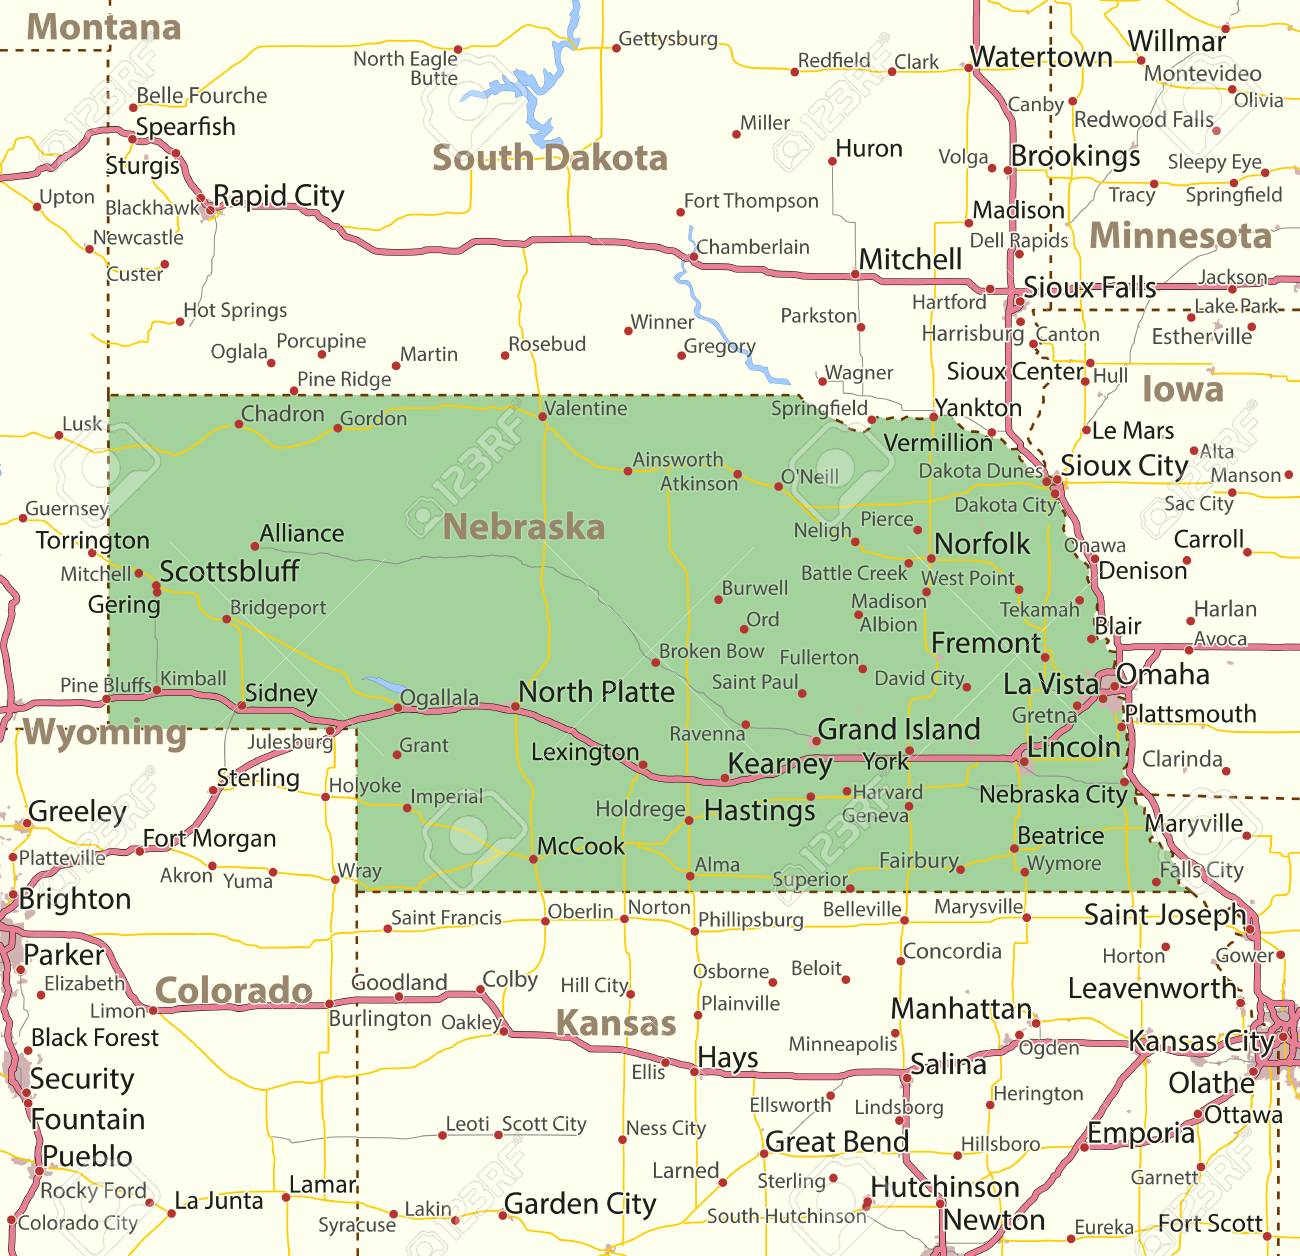 Free Nebraska Map.Map Of Nebraska Shows State Borders Urban Areas Place Names